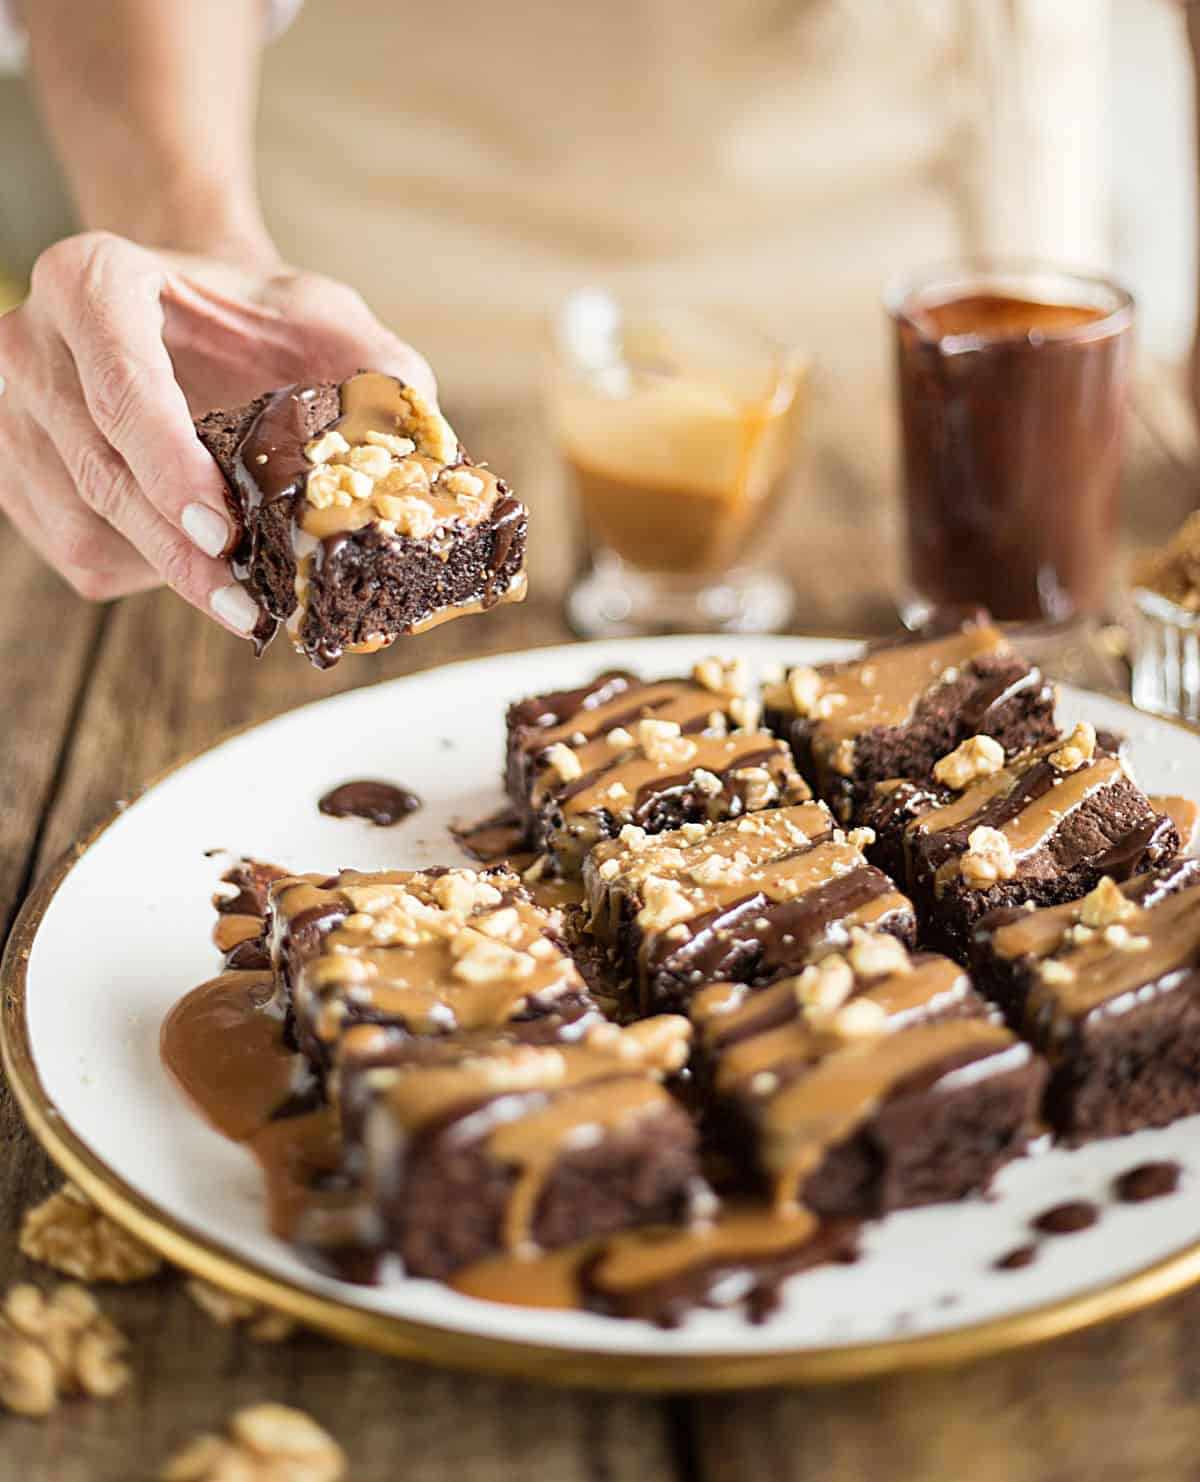 Plate of chocolate and dulce de leche sauced brownies on white gold plate; hand holding one